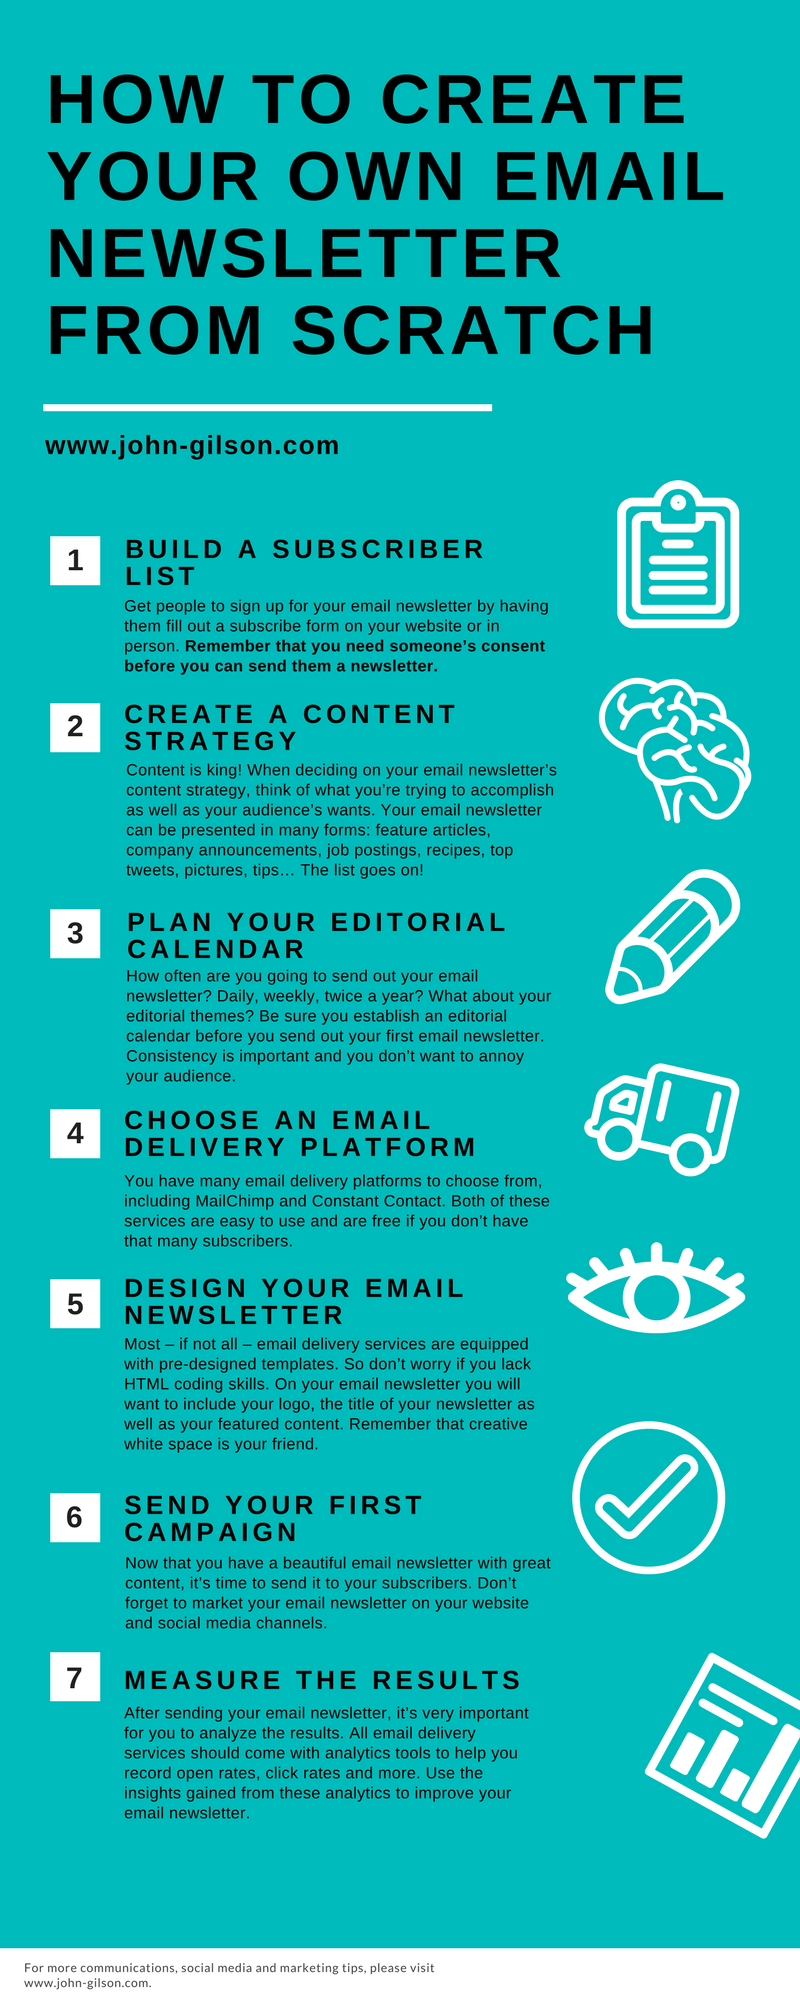 How to Email Newsletter Infographic